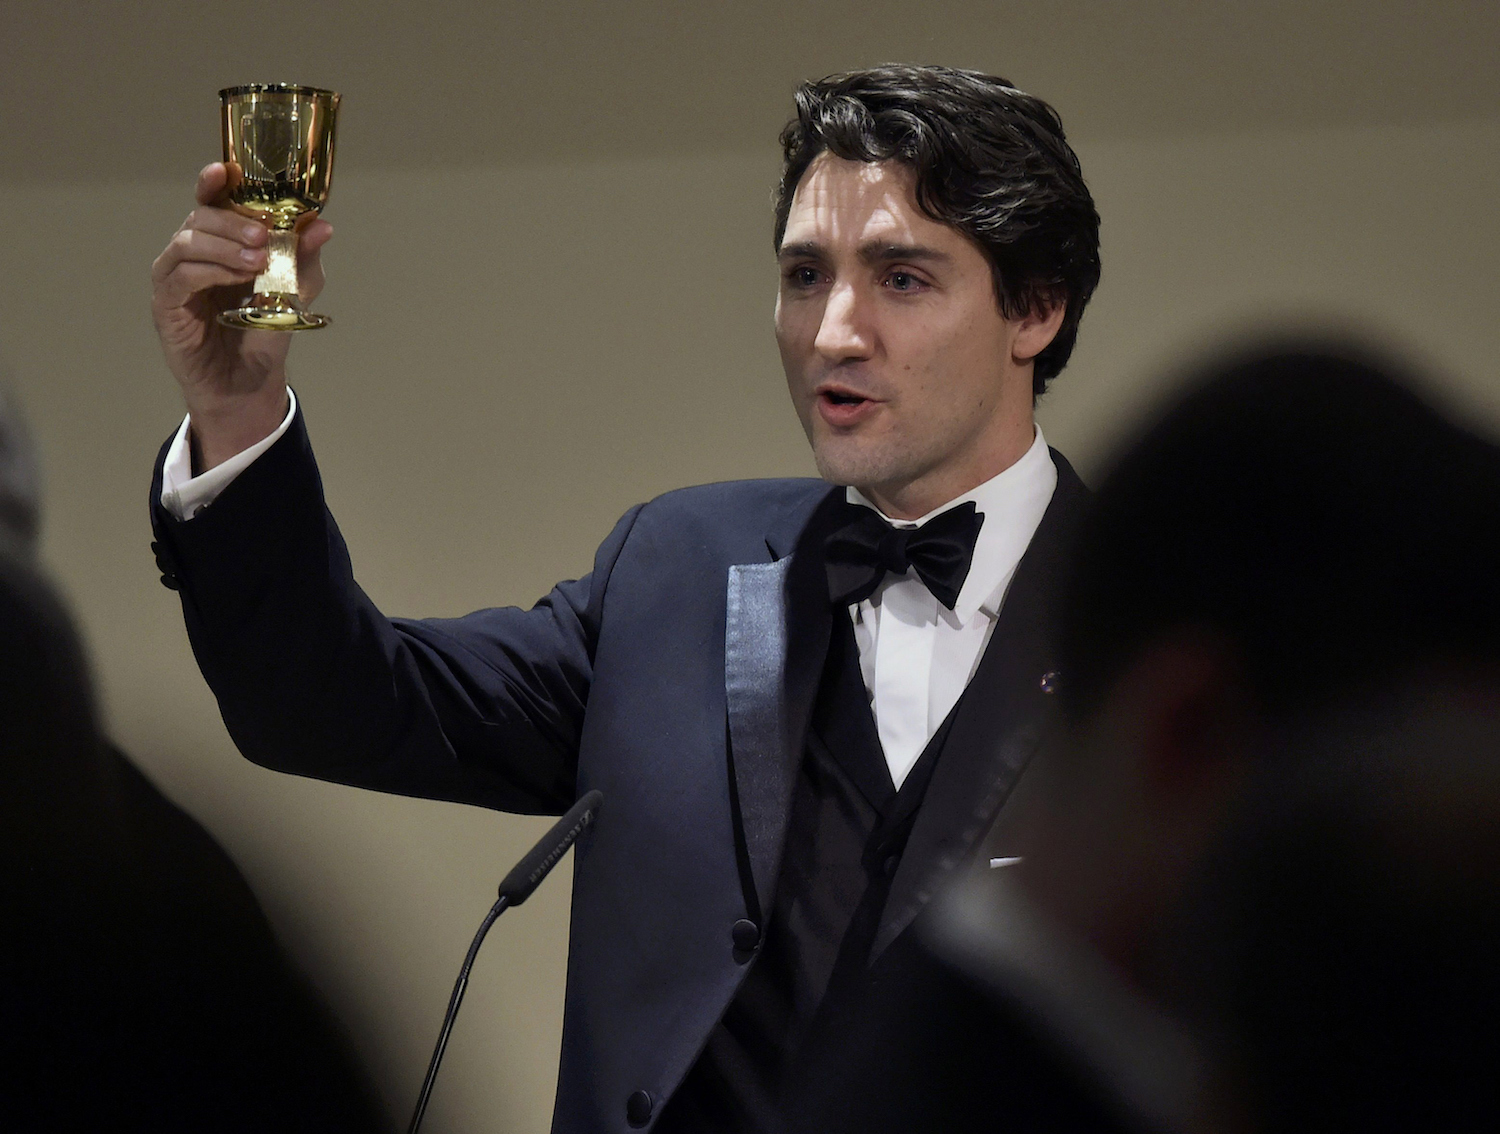 VALLETTA, MALTA - NOVEMBER 27: Canada's Prime Minister Justin Trudeau gives a toast as he attends a dinner at the Corinthia Palace Hotel in Attard during the Commonwealth Heads of Government Meeting (CHOGM) on November 27, 2015 near Valletta, Malta. Queen Elizabeth II, The Duke of Edinburgh, Prince Charles, Prince of Wales and Camilla, Duchess of Cornwall arrived today to attend the Commonwealth Heads of State Summit. (Photo by Toby Melville -Pool/Getty Images)